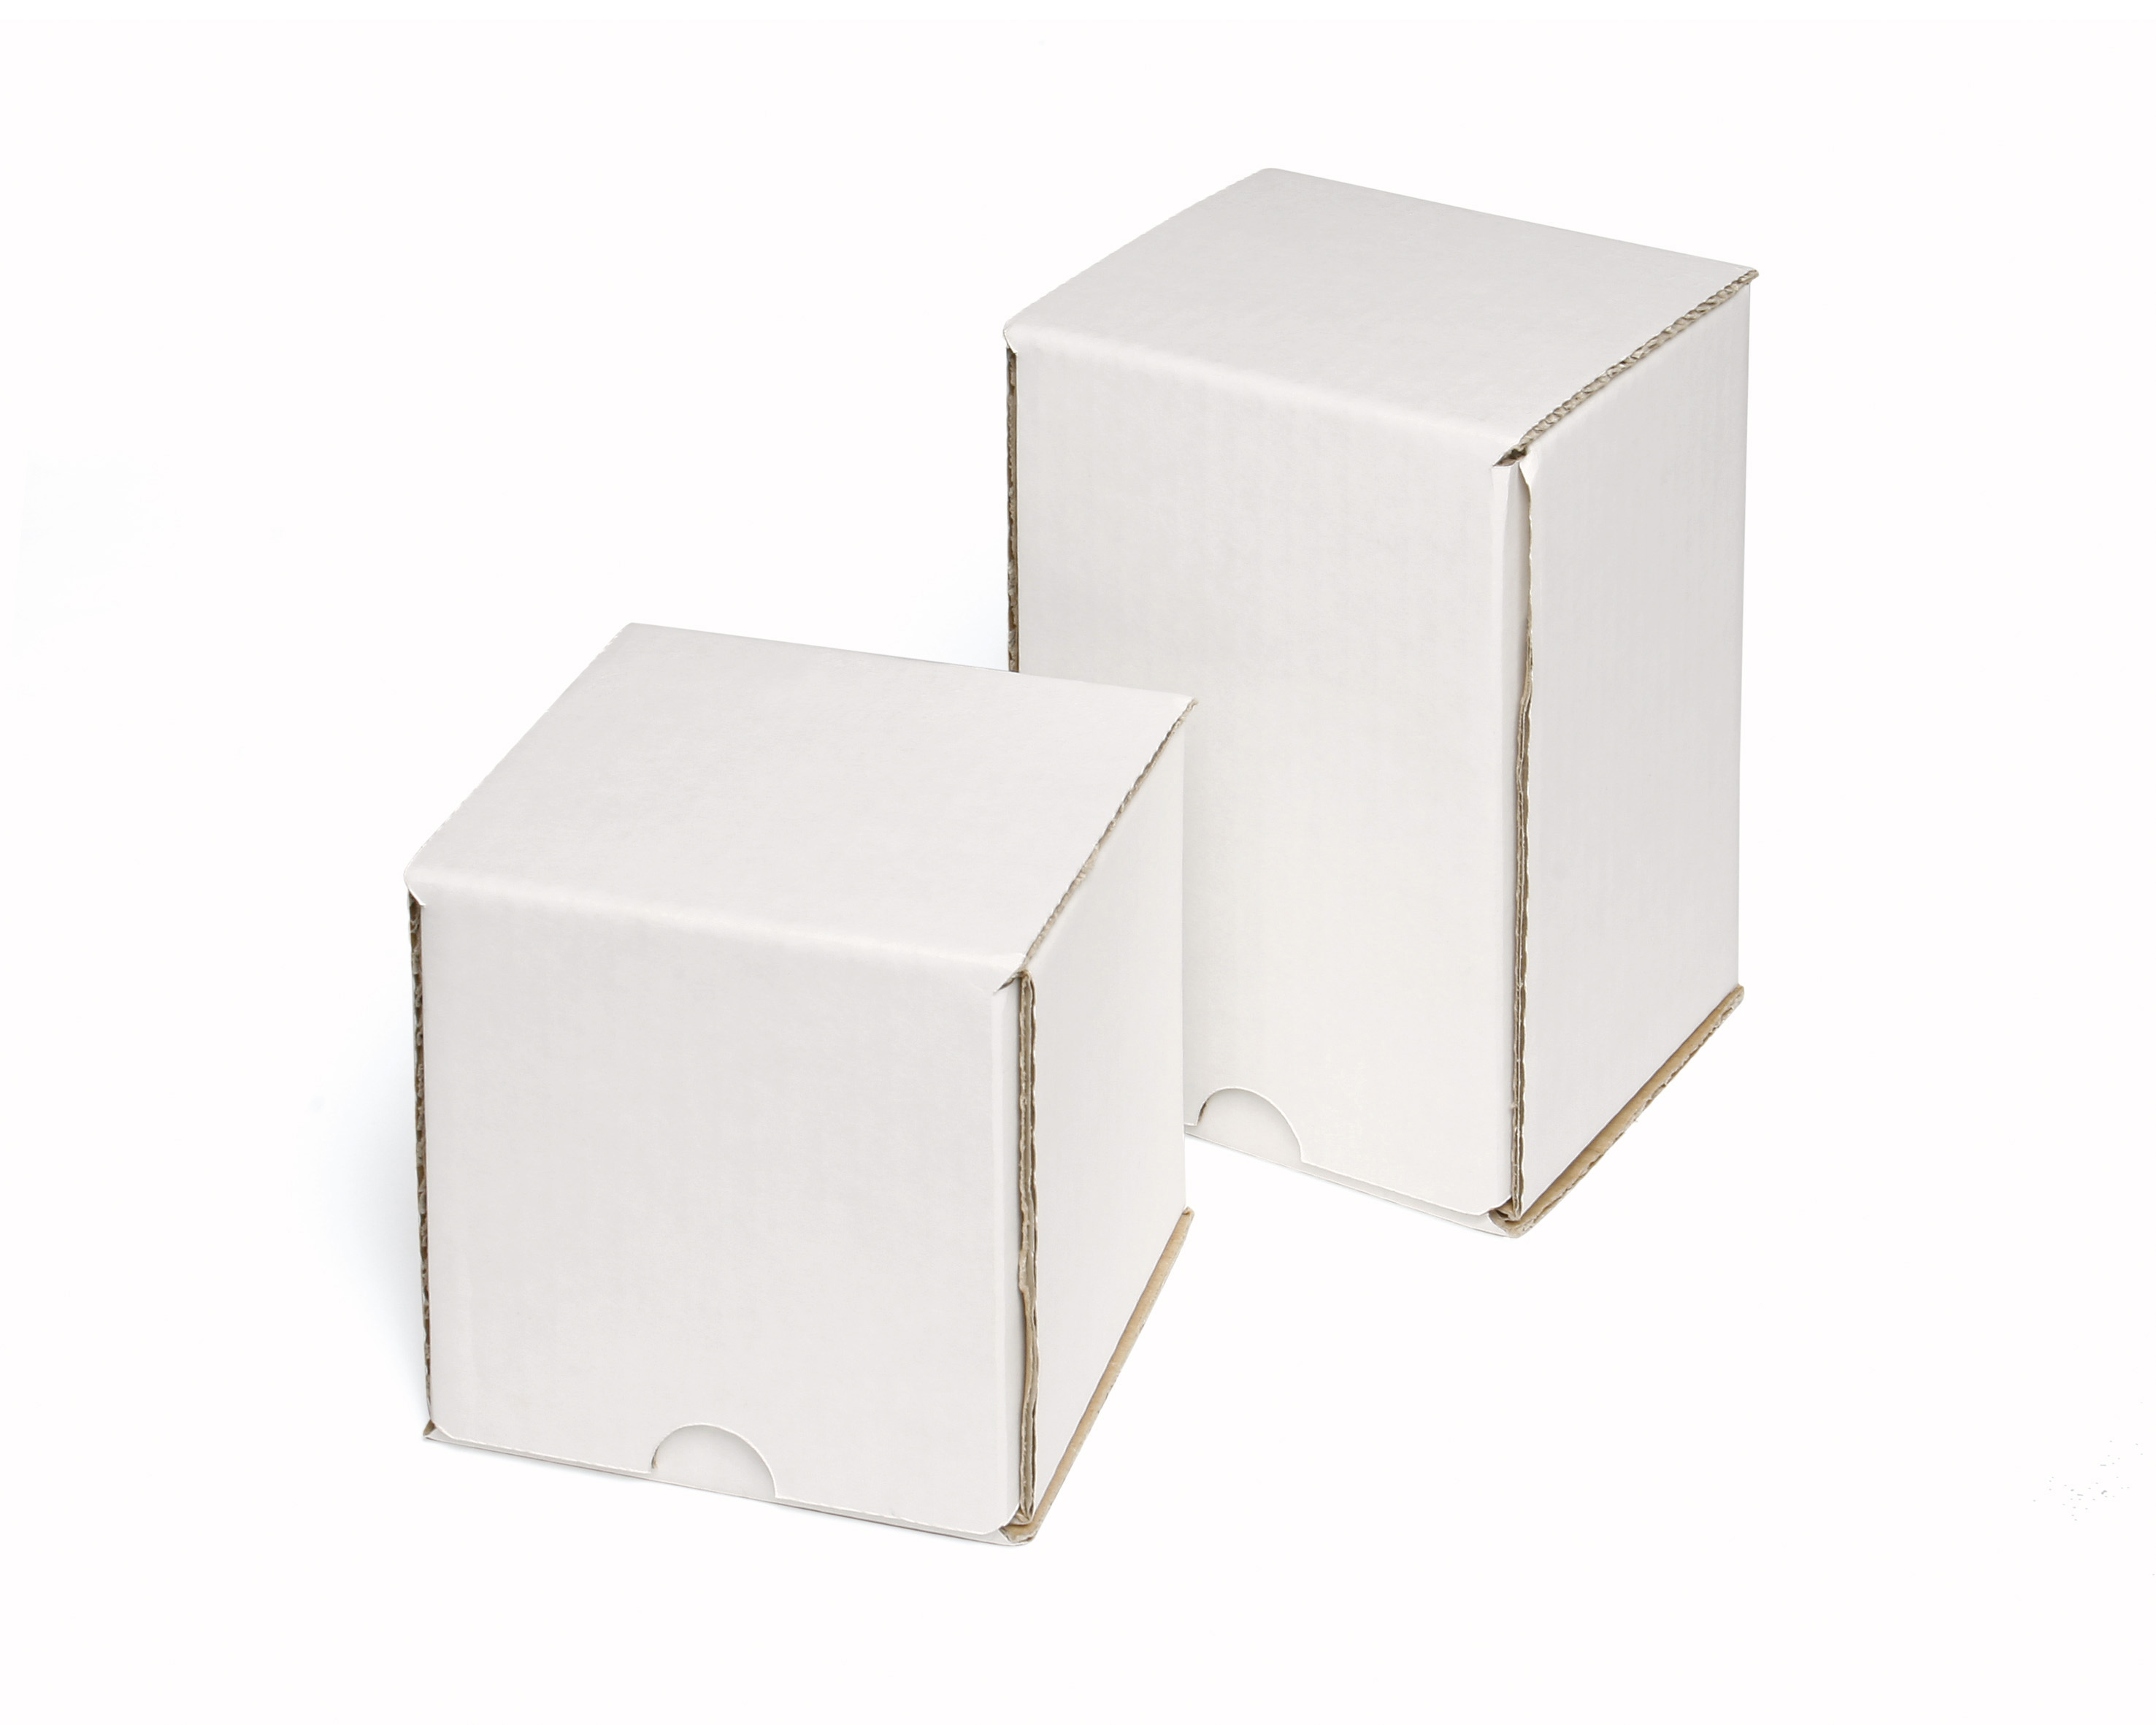 Single White Mailing Carton